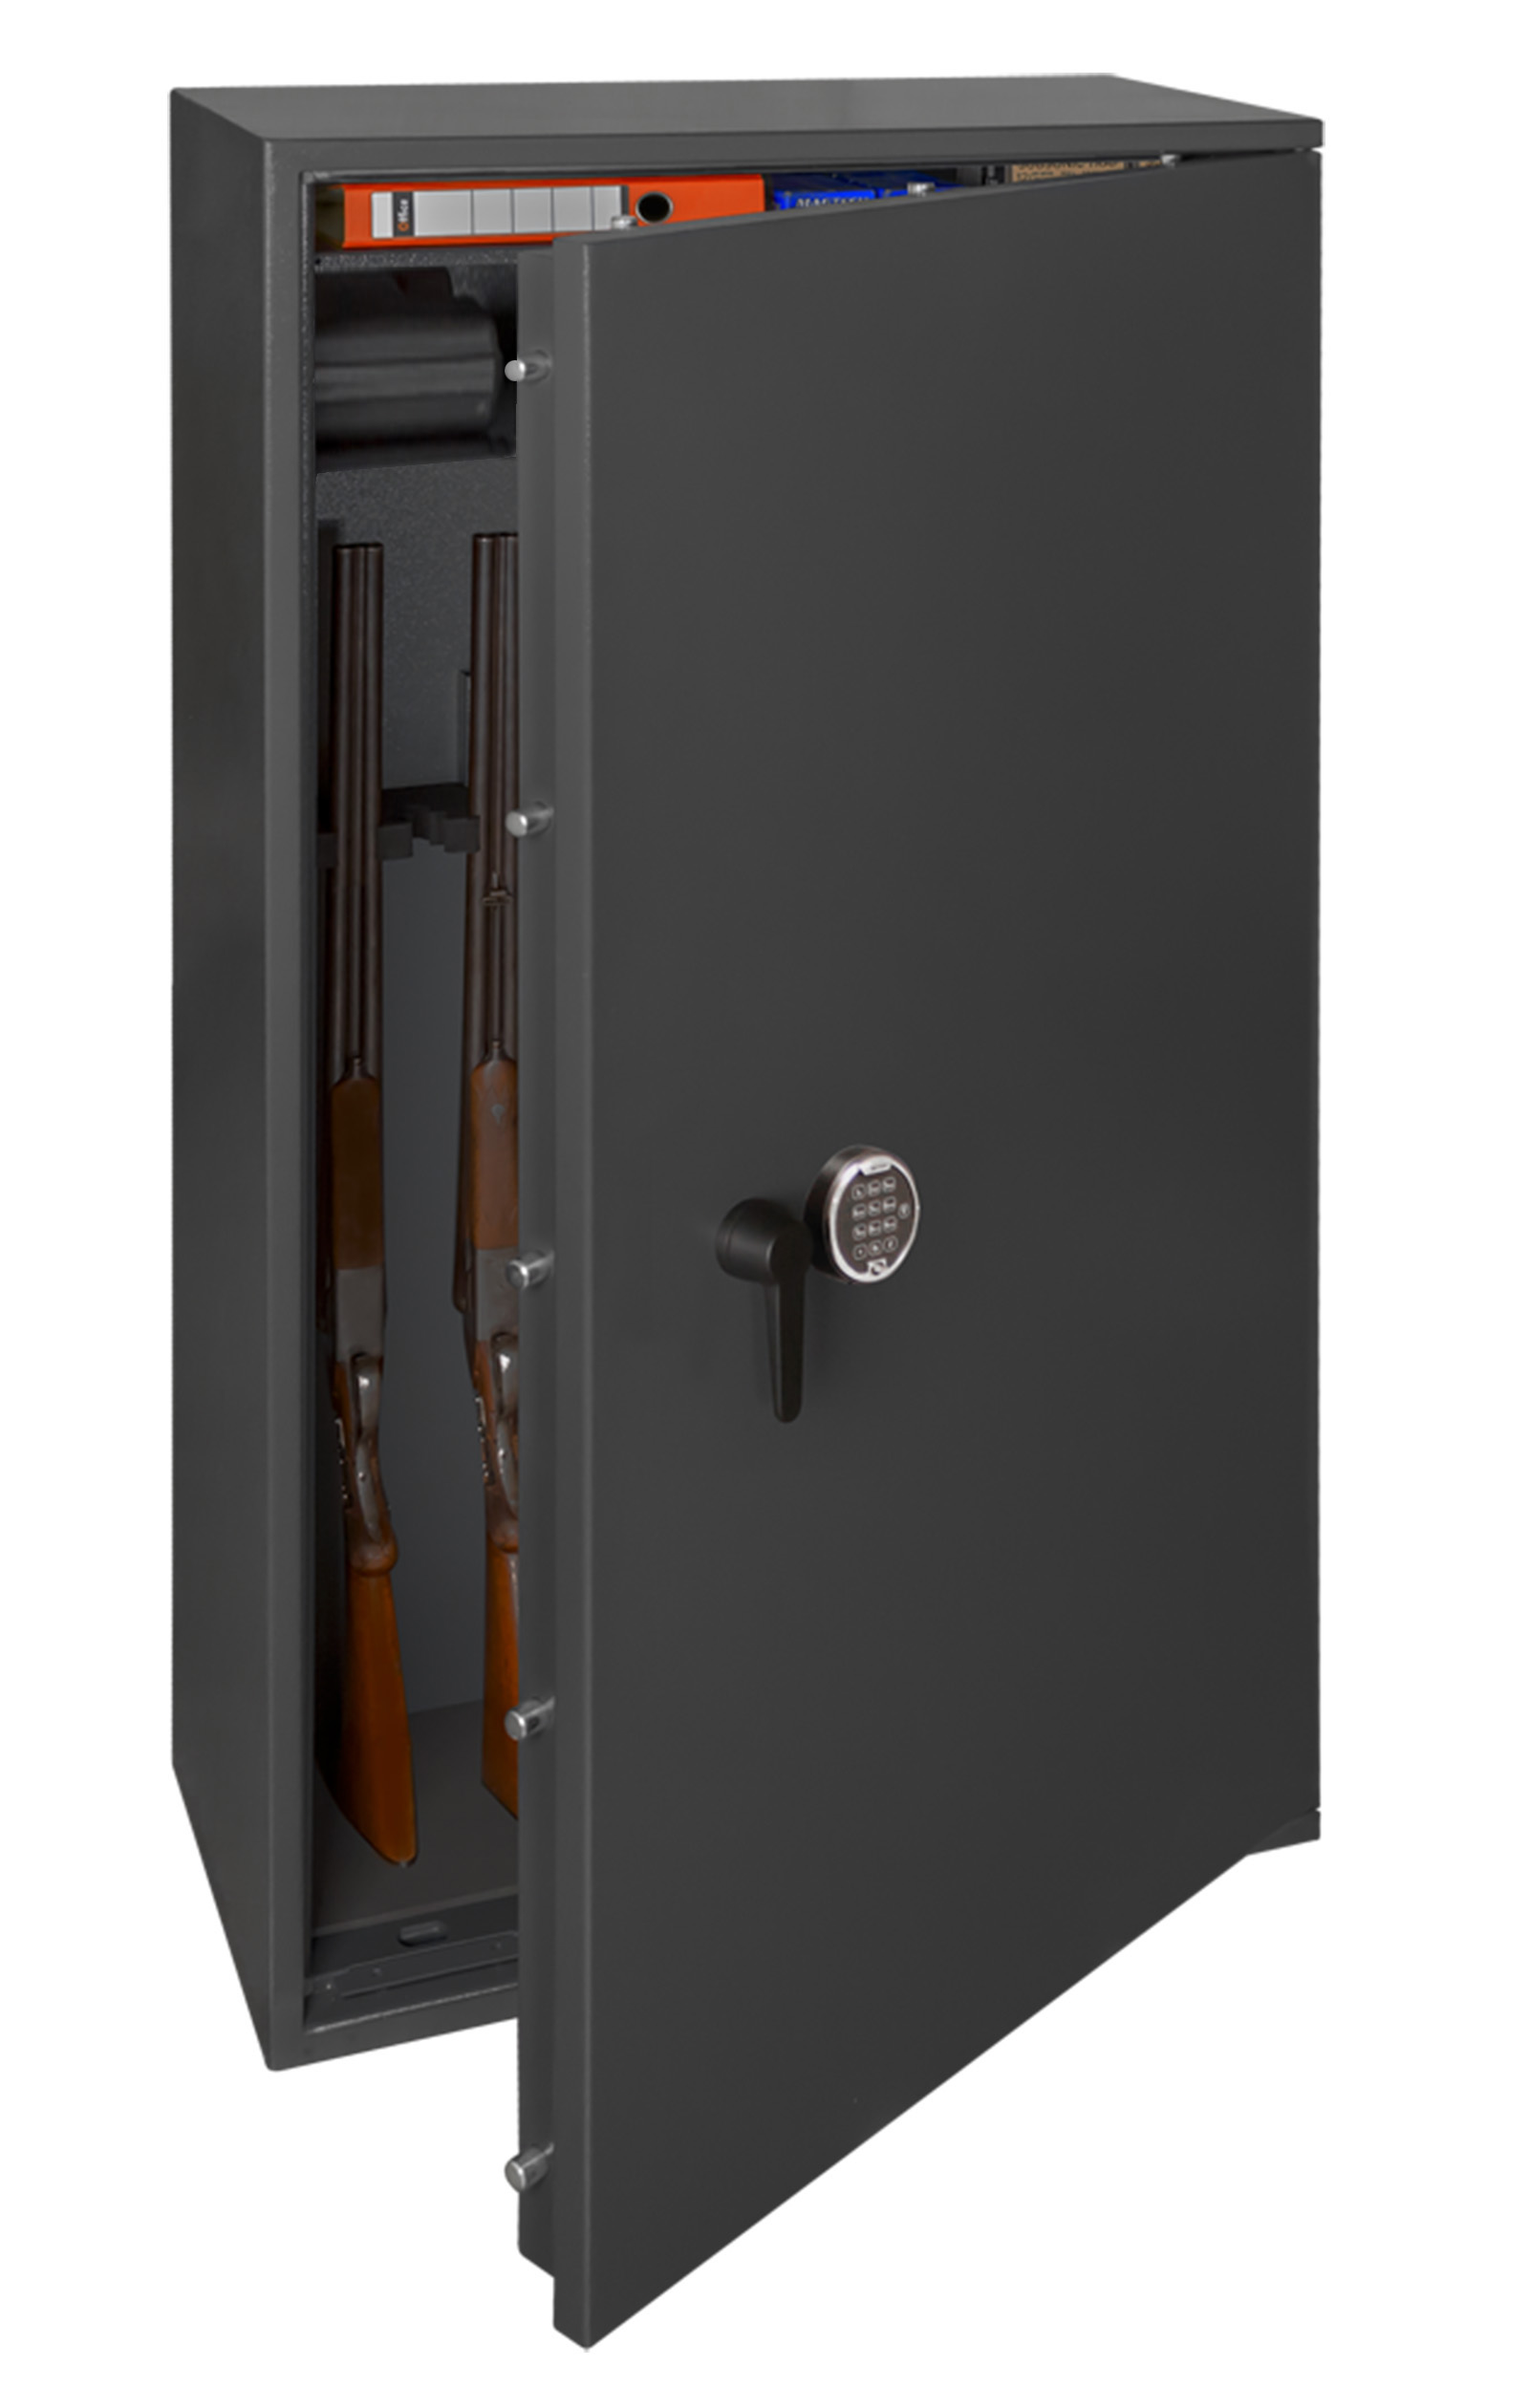 waffenschrank gun safe 1 14 en 1143 1 grad 0 1 mit elektronikschloss. Black Bedroom Furniture Sets. Home Design Ideas